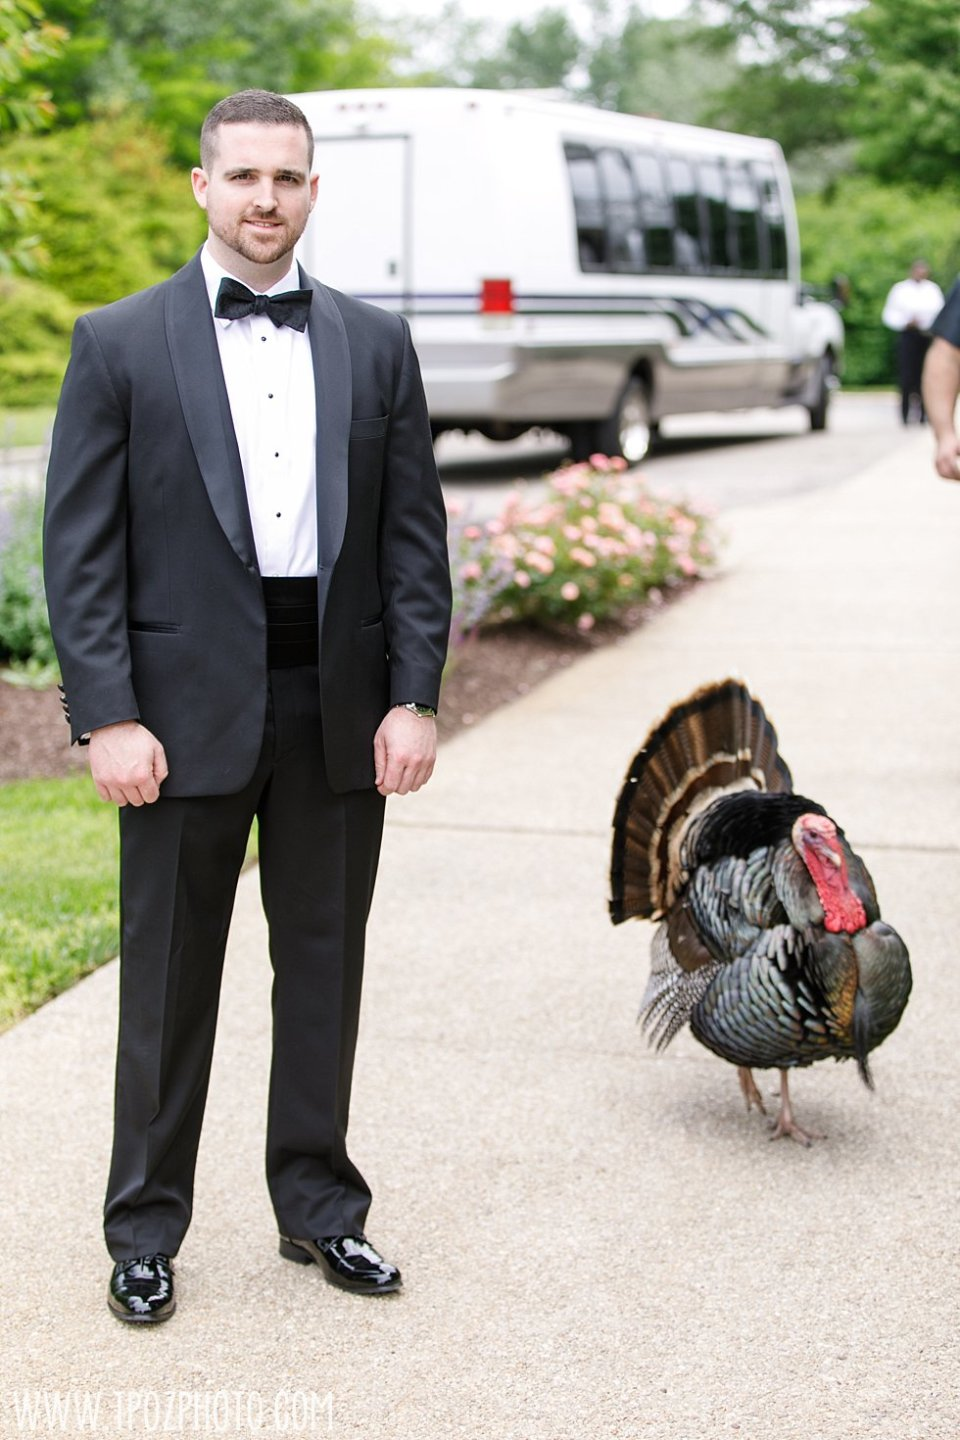 Tom the Turkey at Kent Manor Inn Wedding • tPoz Photography